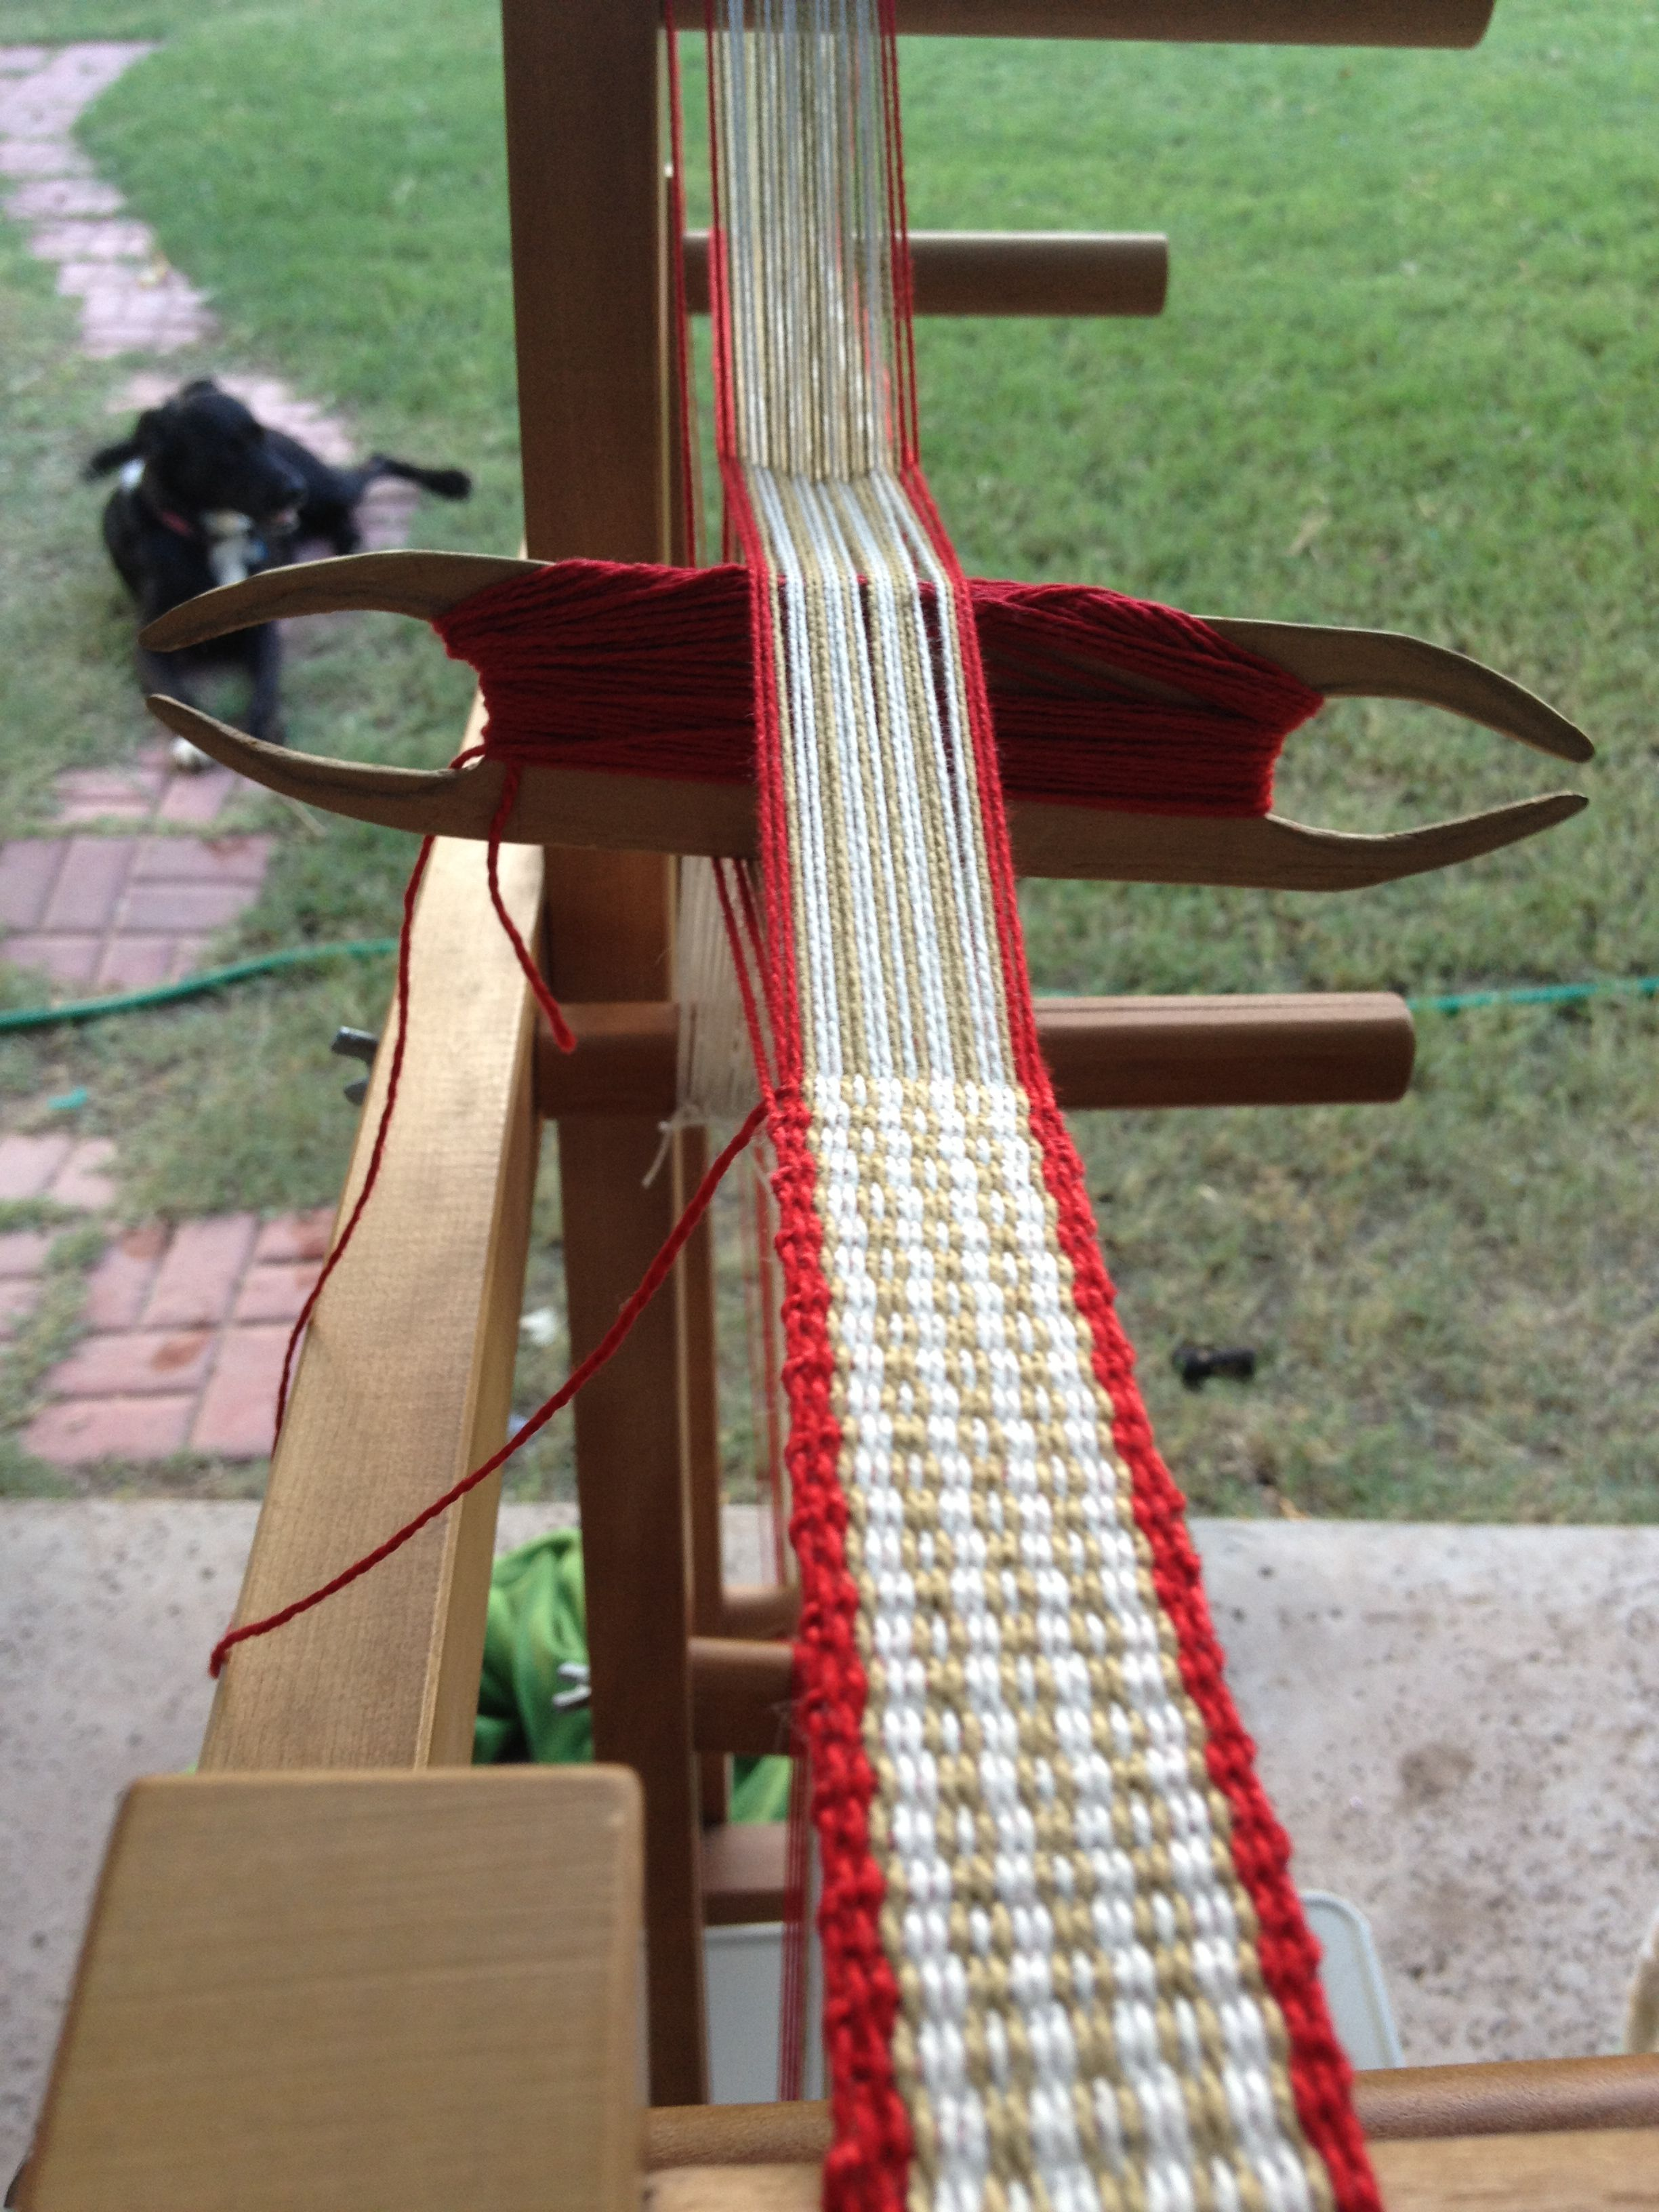 Inkle loom rescue mission (a box of random looking